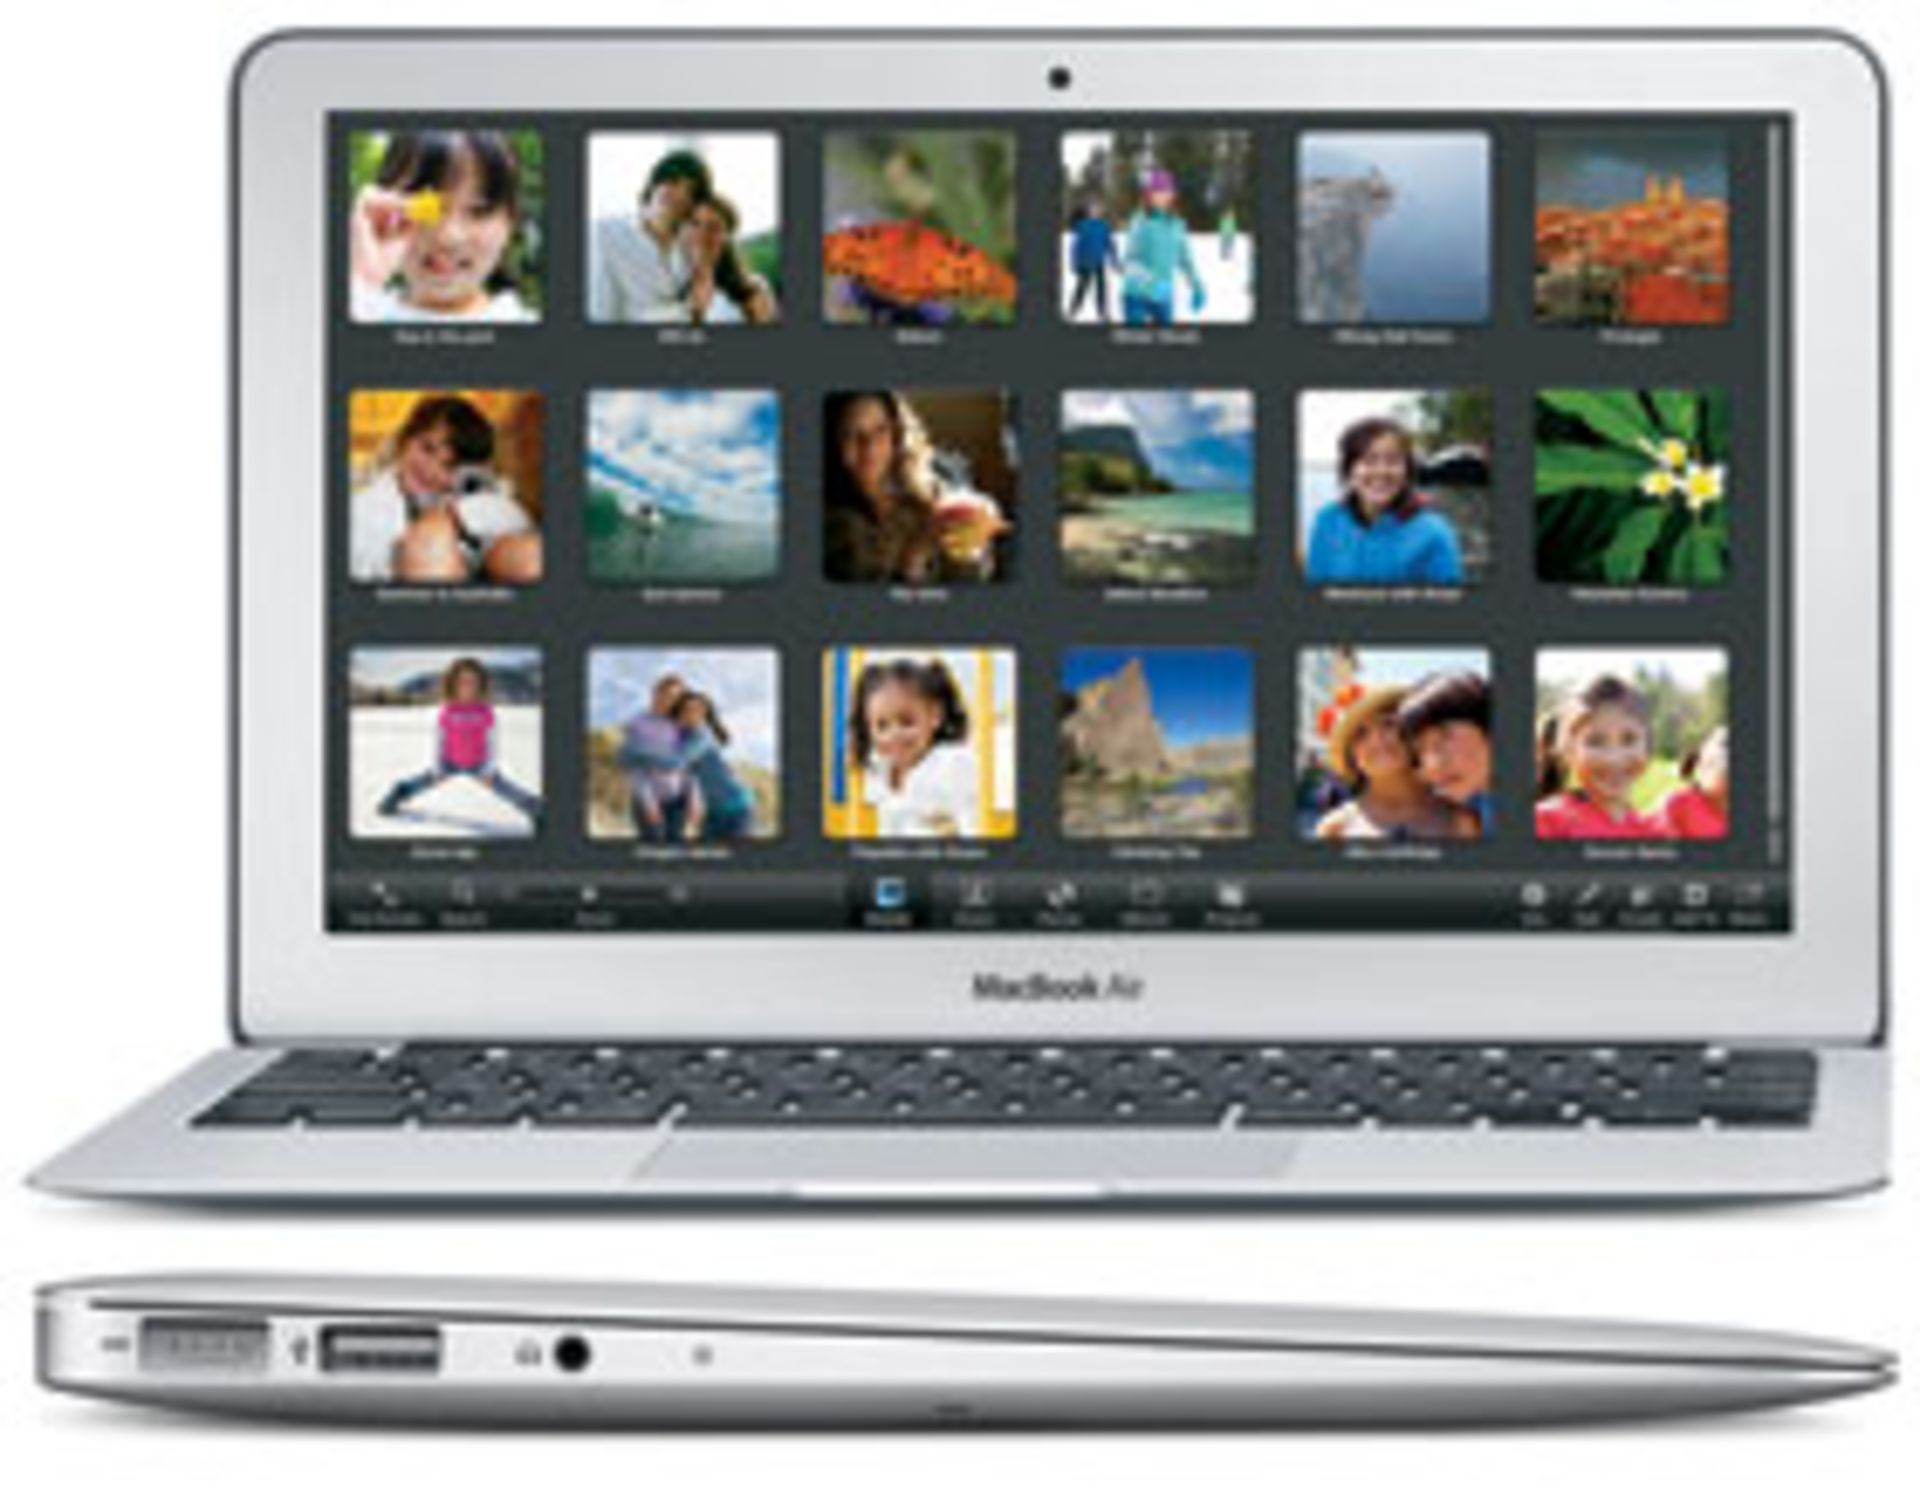 Lot 60047 - V Grade B Macbook Air 11.6 Inch Core 2 Duo - 64GB SSD - A1370 - Available Approx 7 Working Days